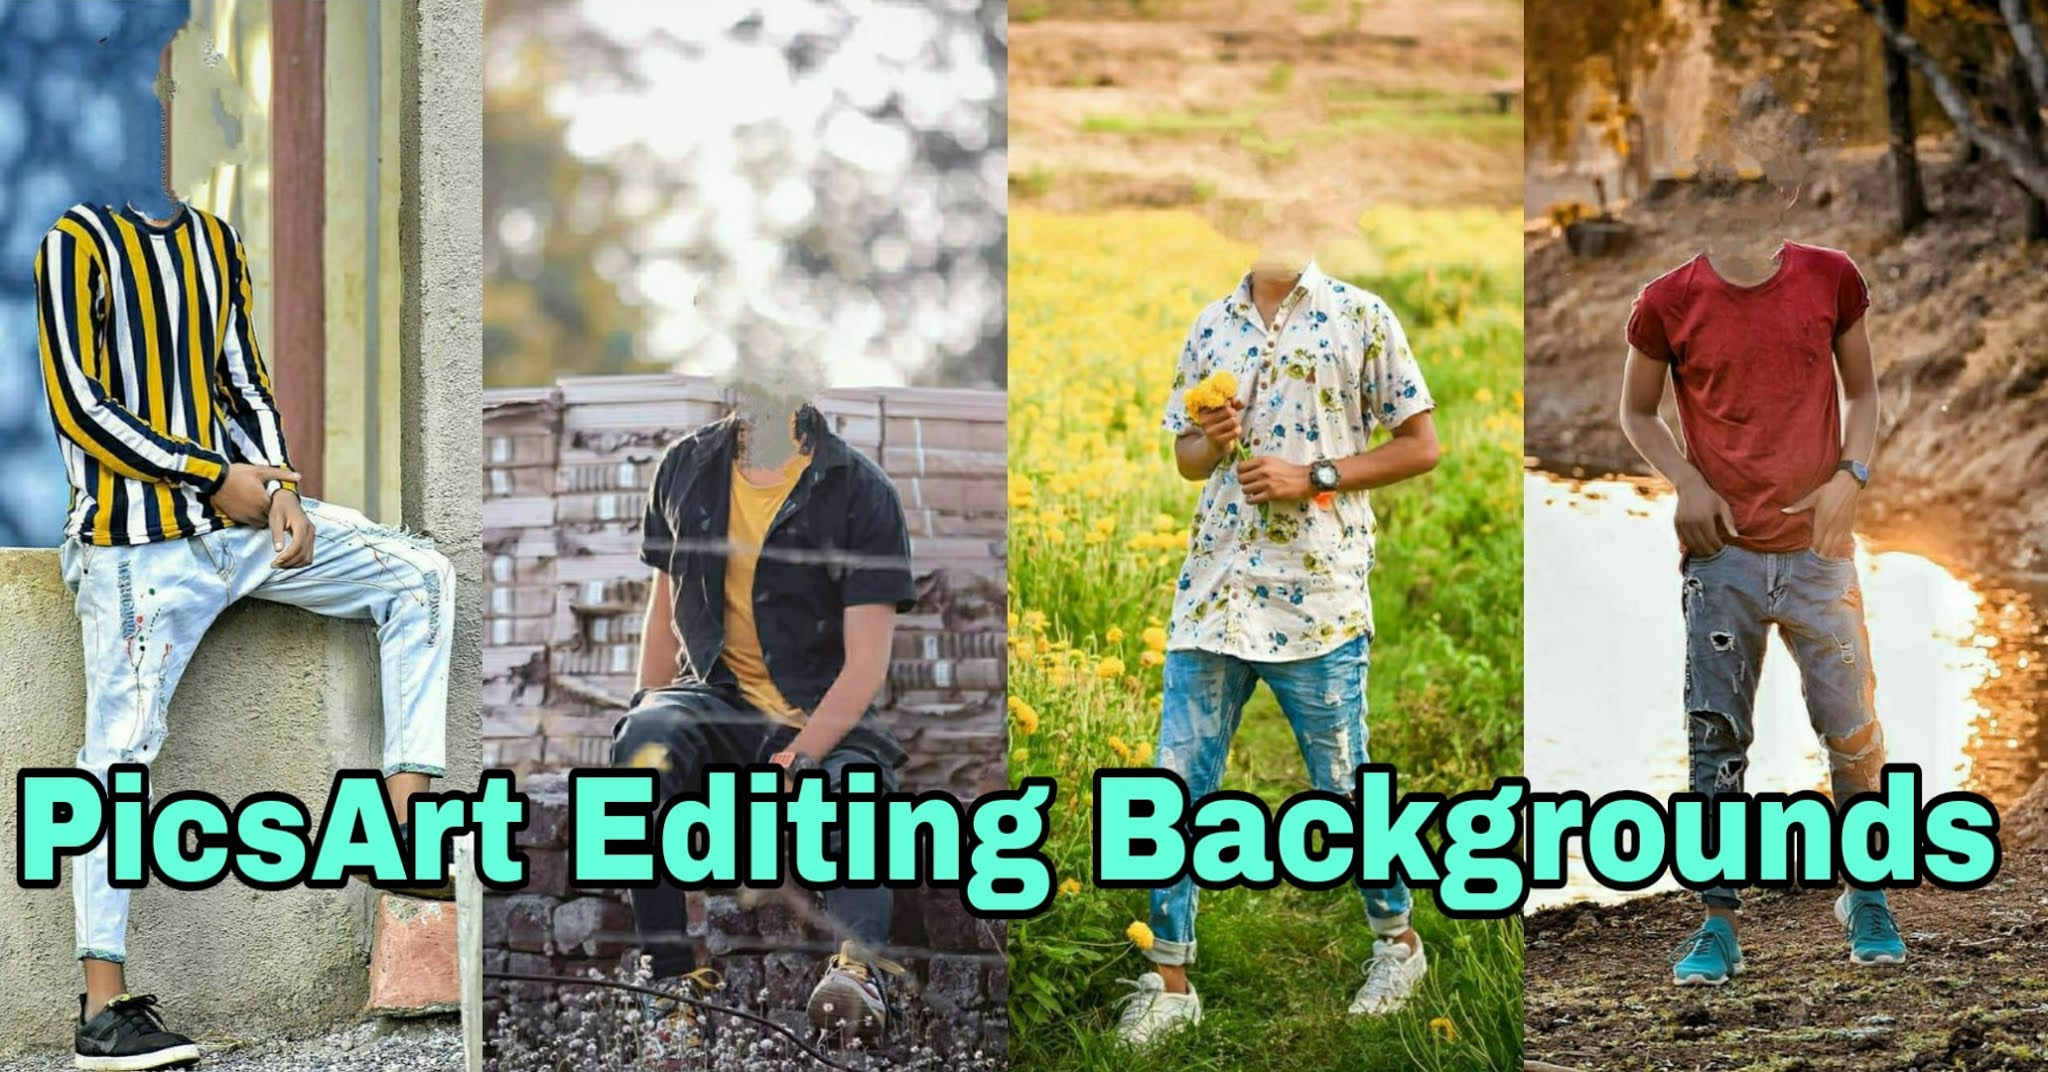 PicsArt Editing Background Hd 2020 | Photo Editing Backgrounds for Boys